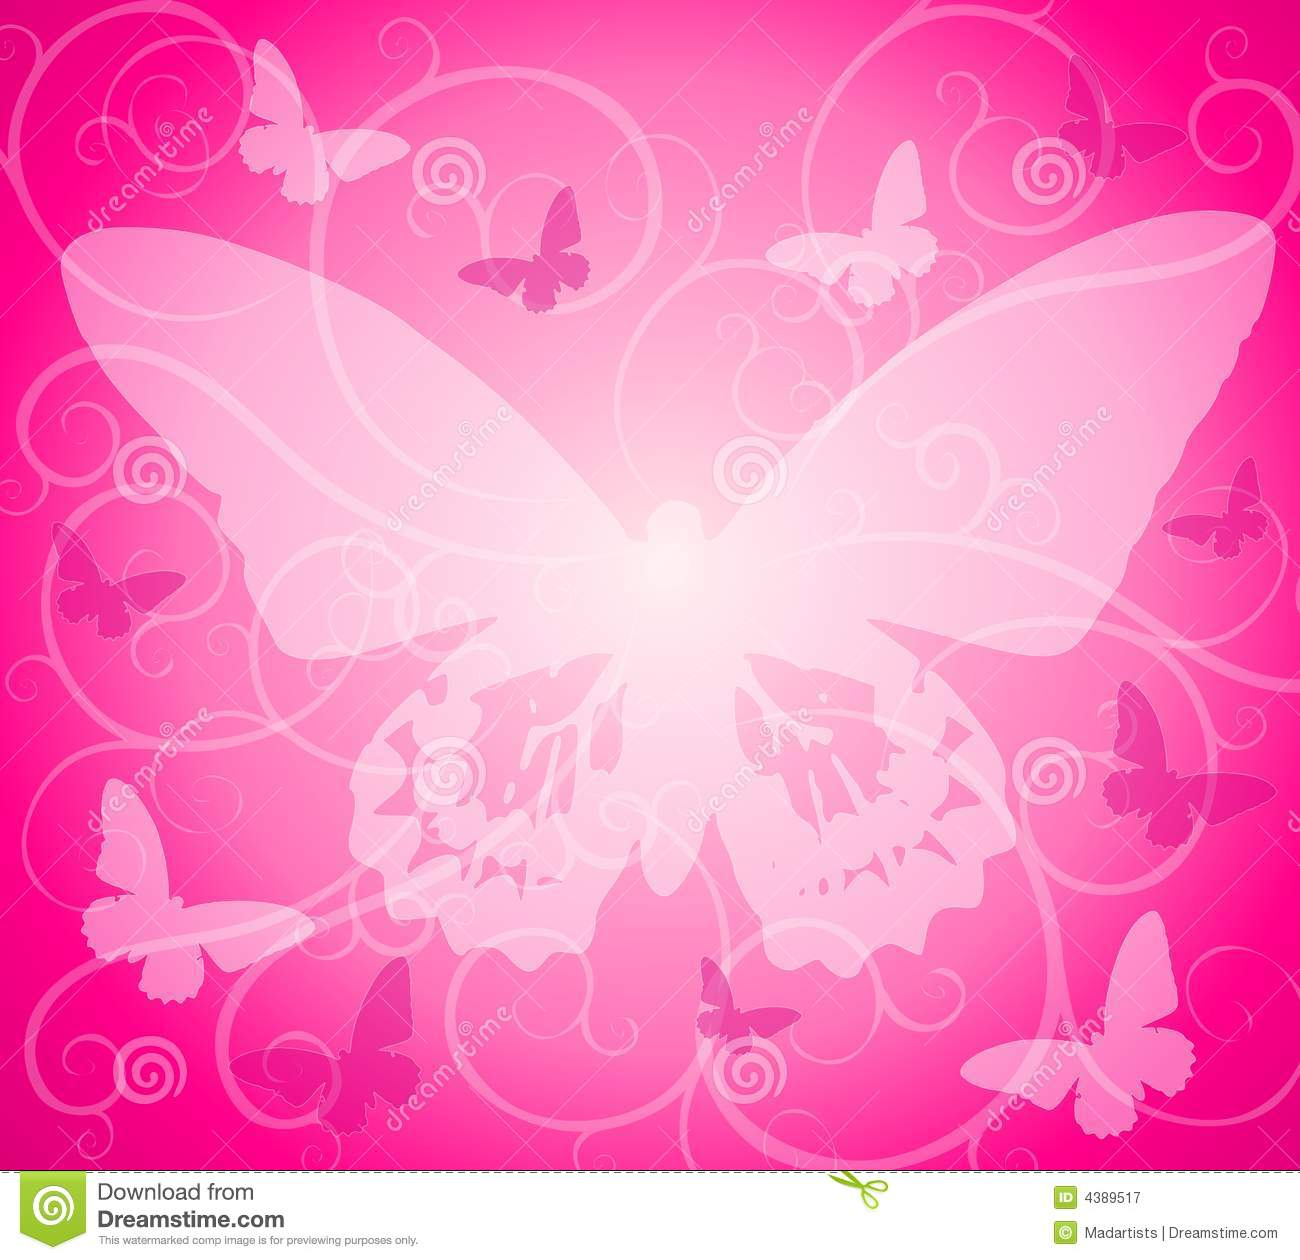 Pink Butterfly Wallpaper: Pink Opaque Butterfly Background Stock Illustration